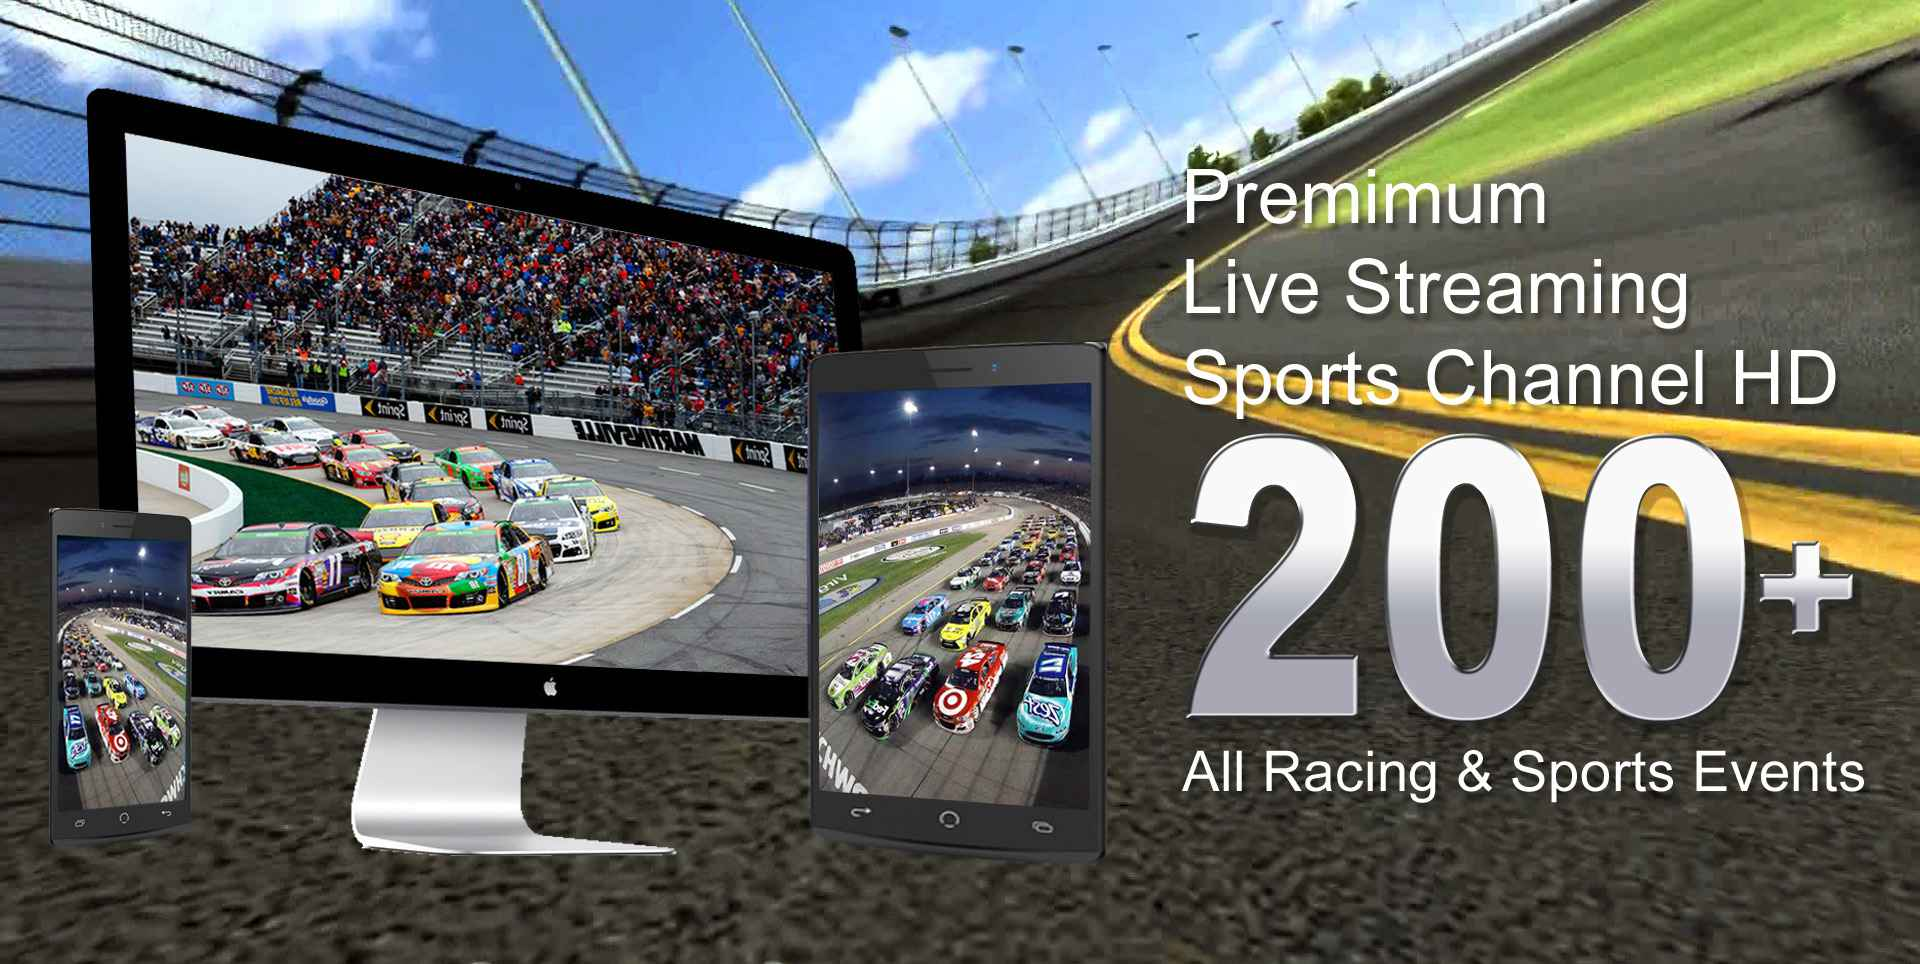 2016 NASCAR Brickyard 400 streaming